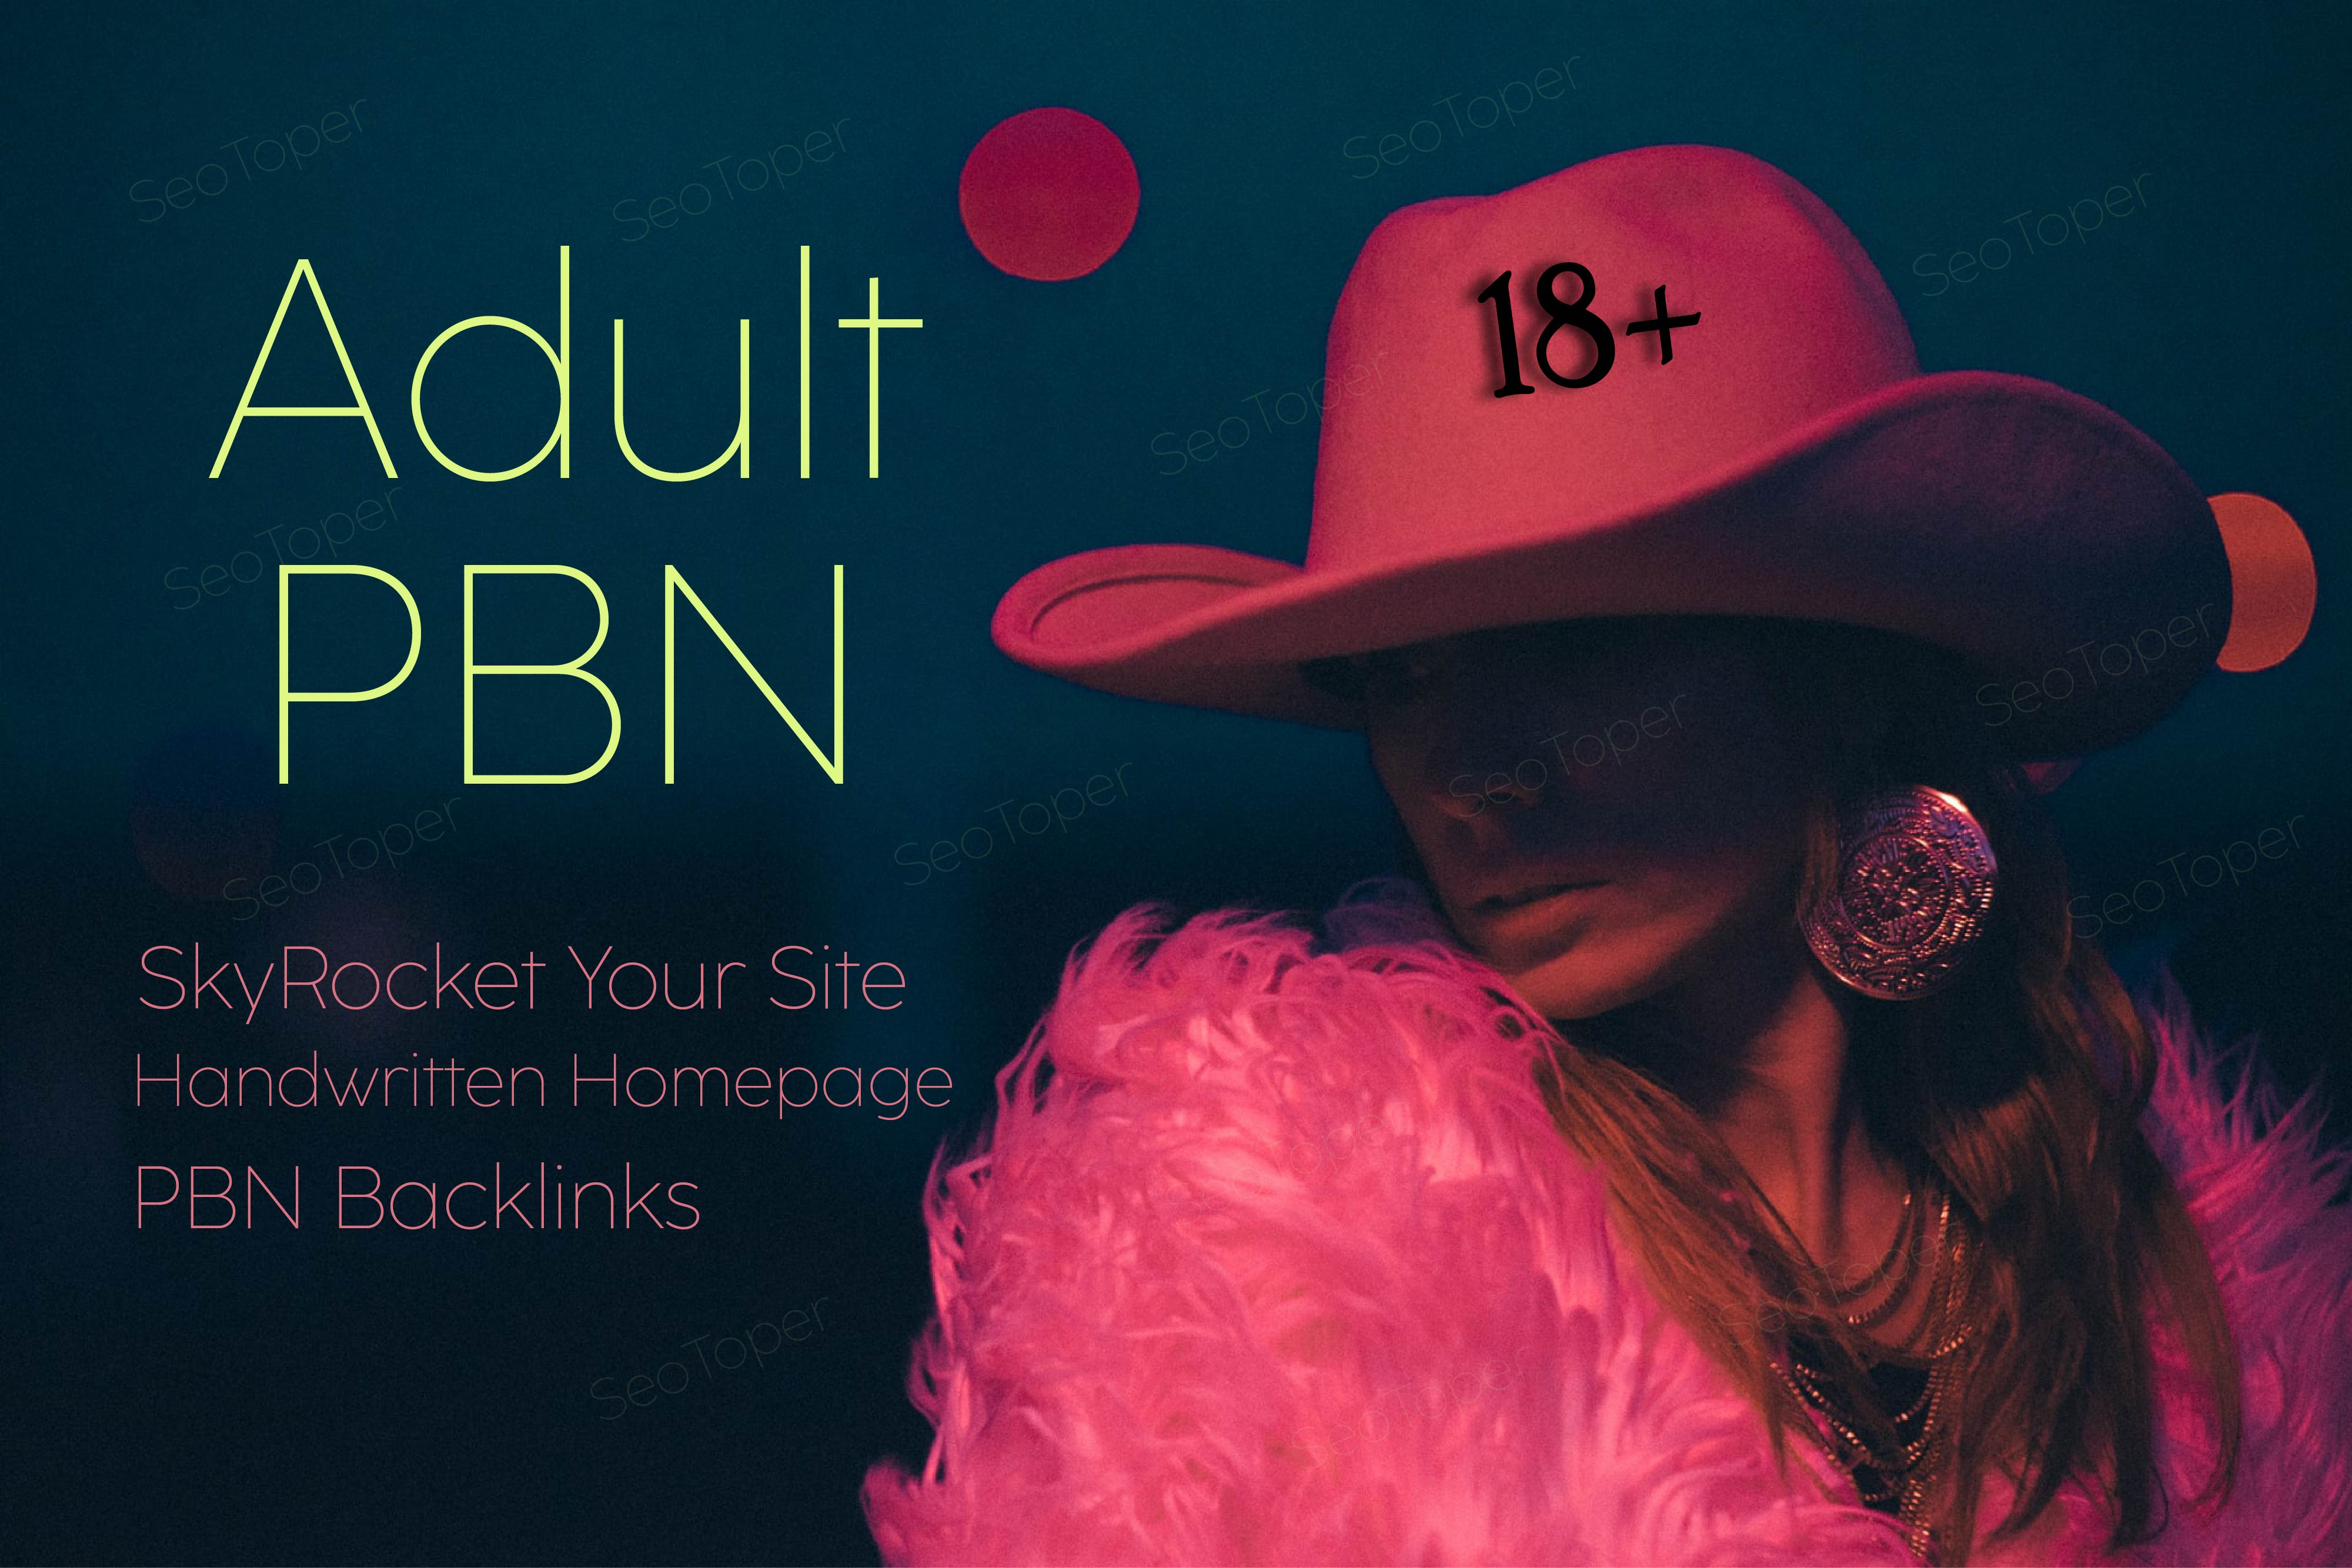 2021 Latest V3 Adult 25+PBN Rank Your Porn Site Now UPTO DA PA 58+ Homepage PBN Backlinks